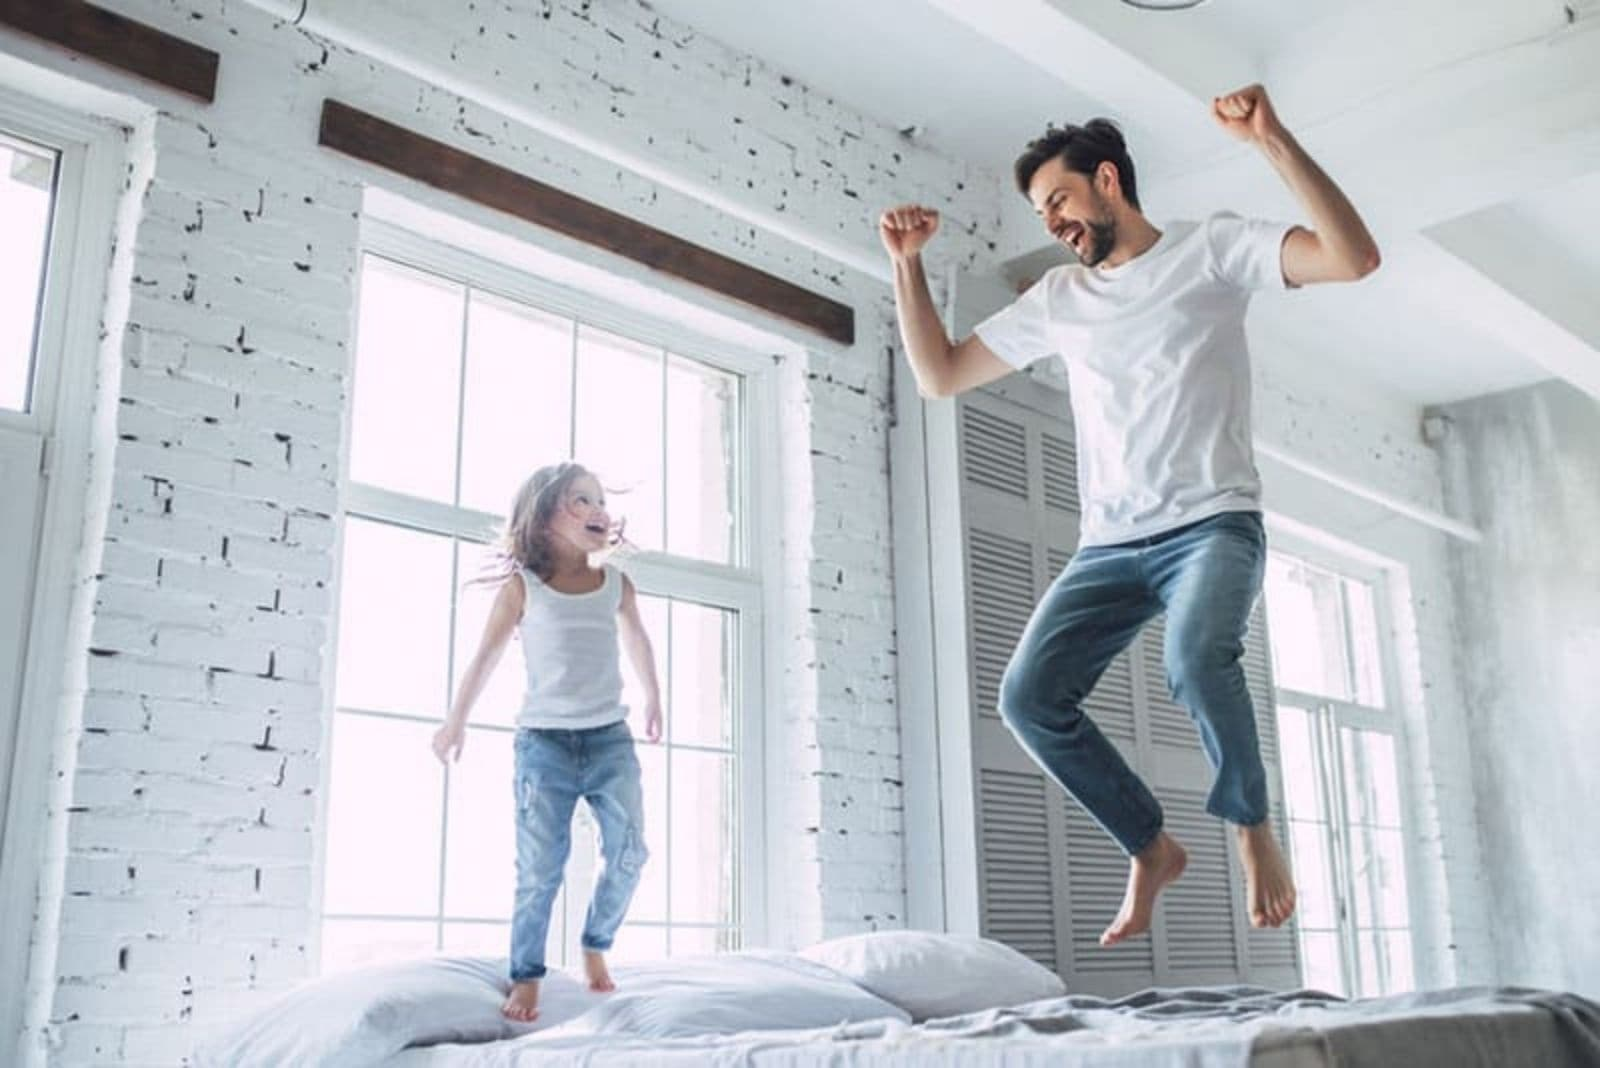 a man with a child jumps on the bed